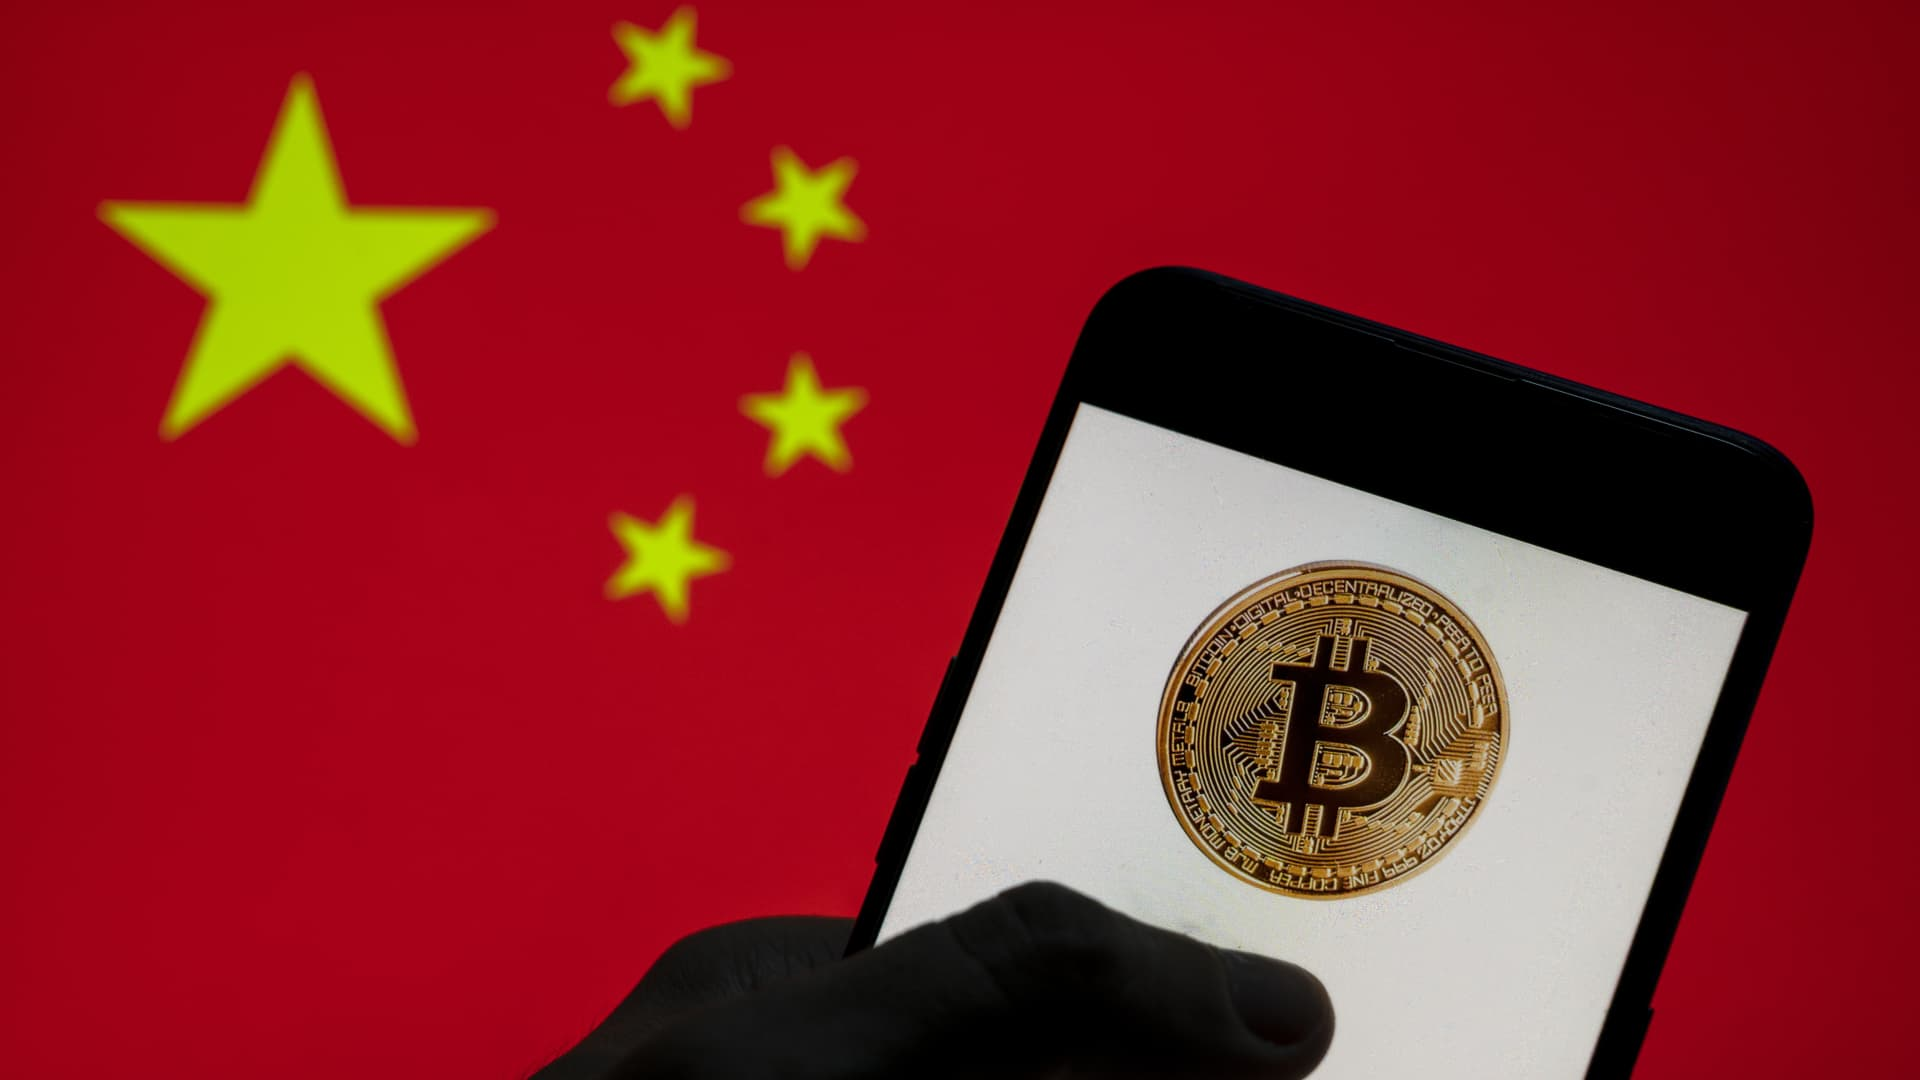 In this photo illustration, the Bitcoin logo is seen on a mobile device with People's Republic of China flag in the background. (Photo Illustration by t/SOPA Images/LightRocket via Getty Images)